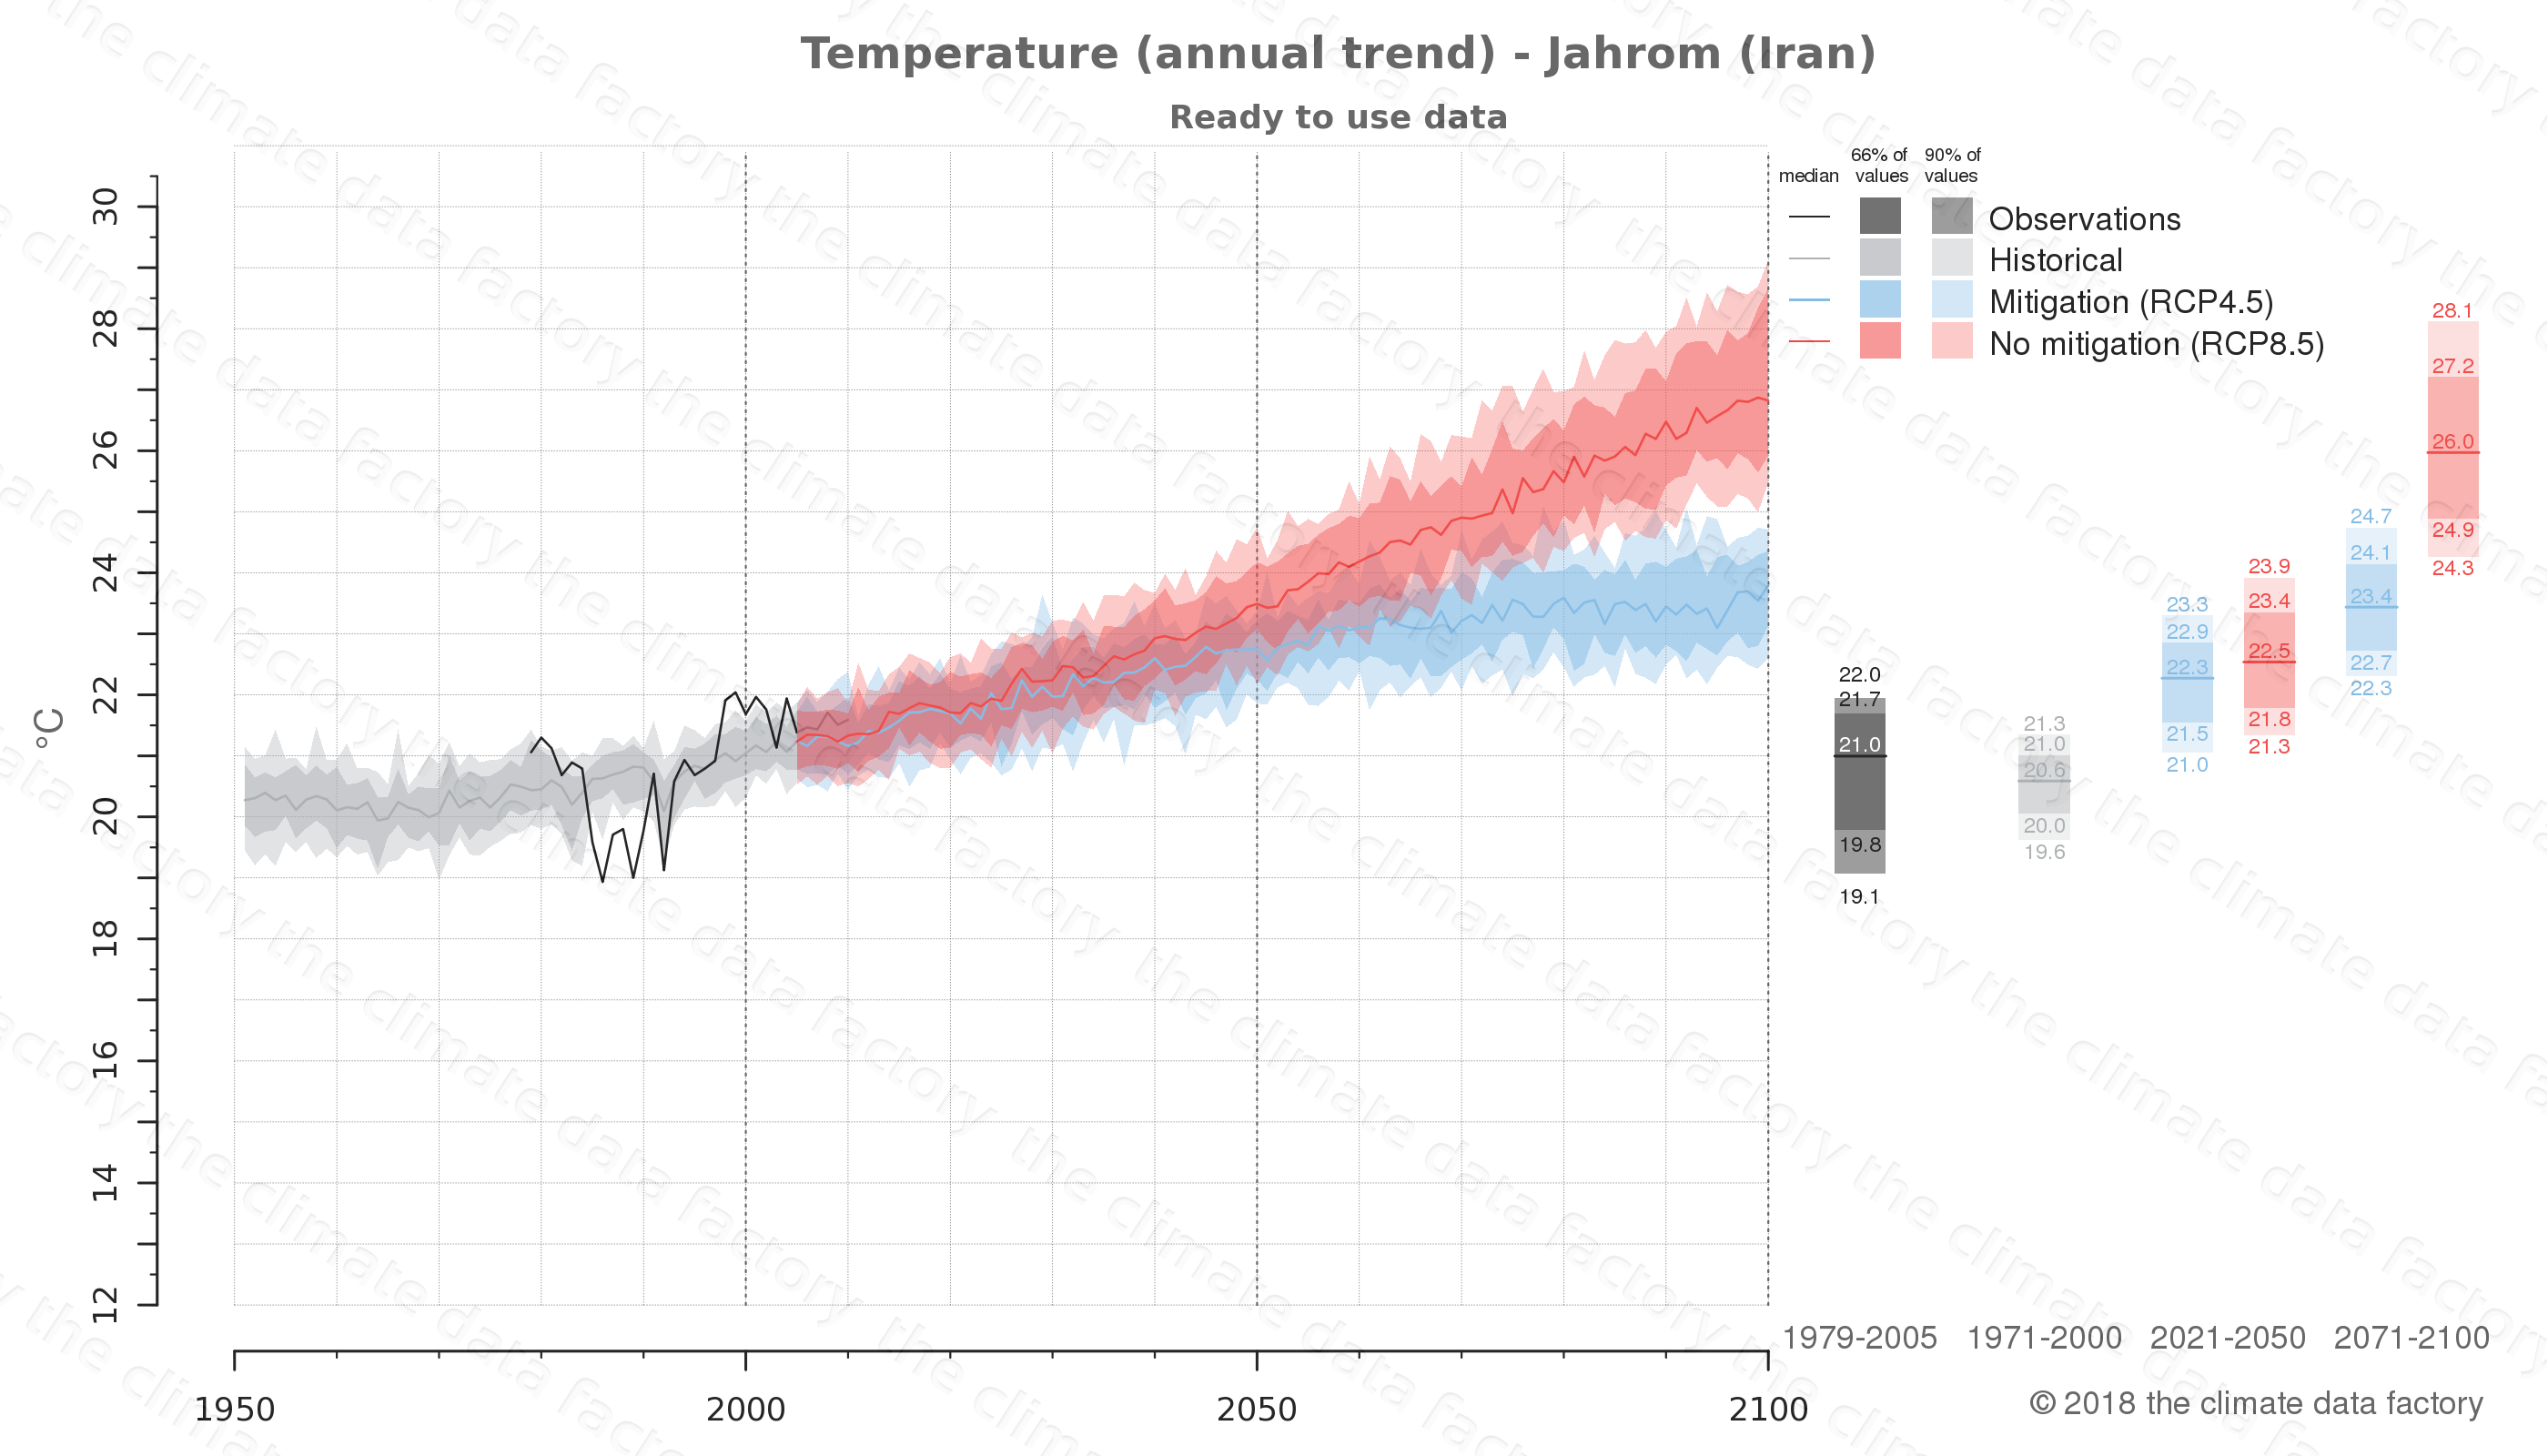 climate change data policy adaptation climate graph city data temperature jahrom iran